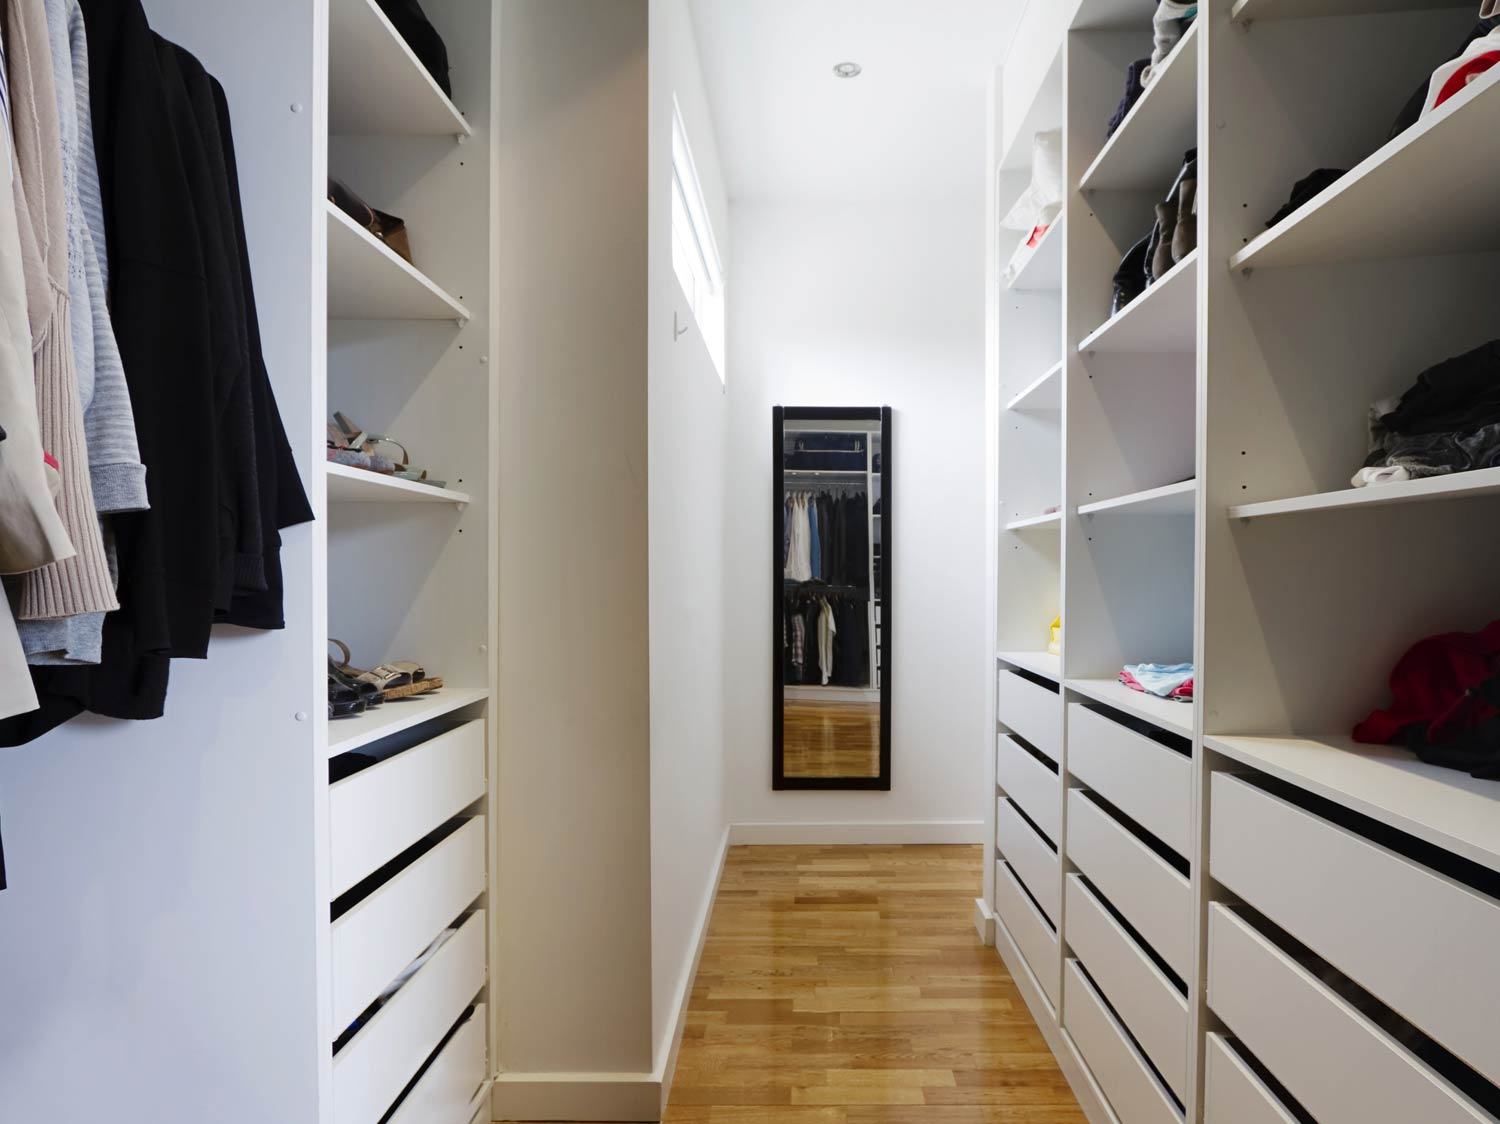 Simplistic white walk in wardrobe solution with adjustable storage shelving and pull out handl-less draws. This solution gives plenty of choice for storing all types of clothing, shoes and accessories.